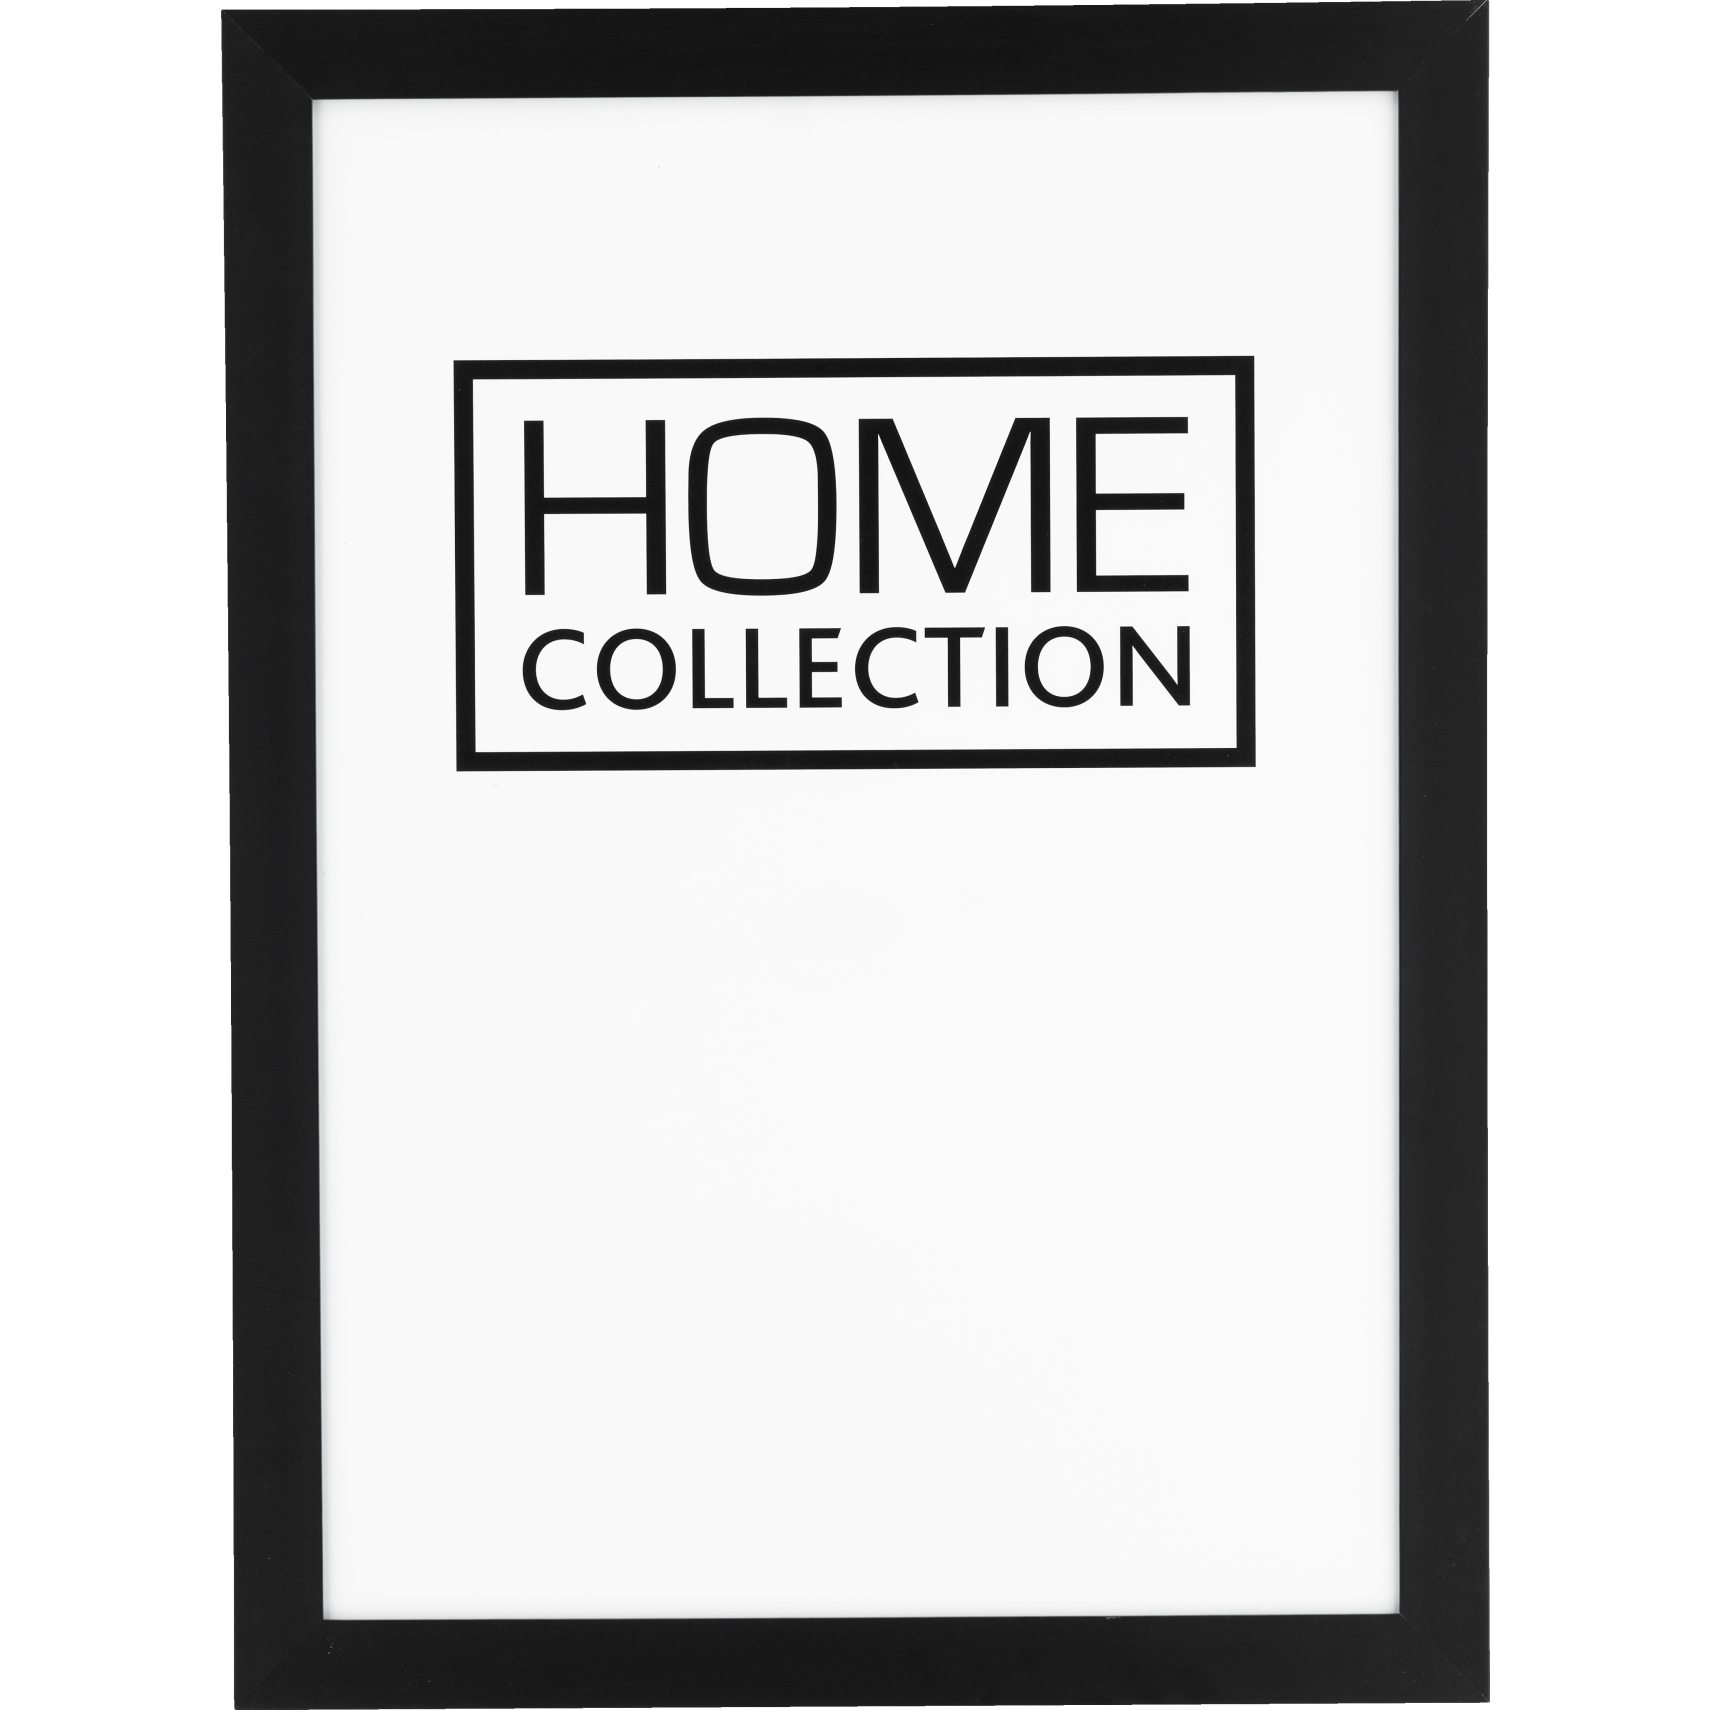 HOME COLLECTION Ram 30 x 40 x 2 cm - Svart träram